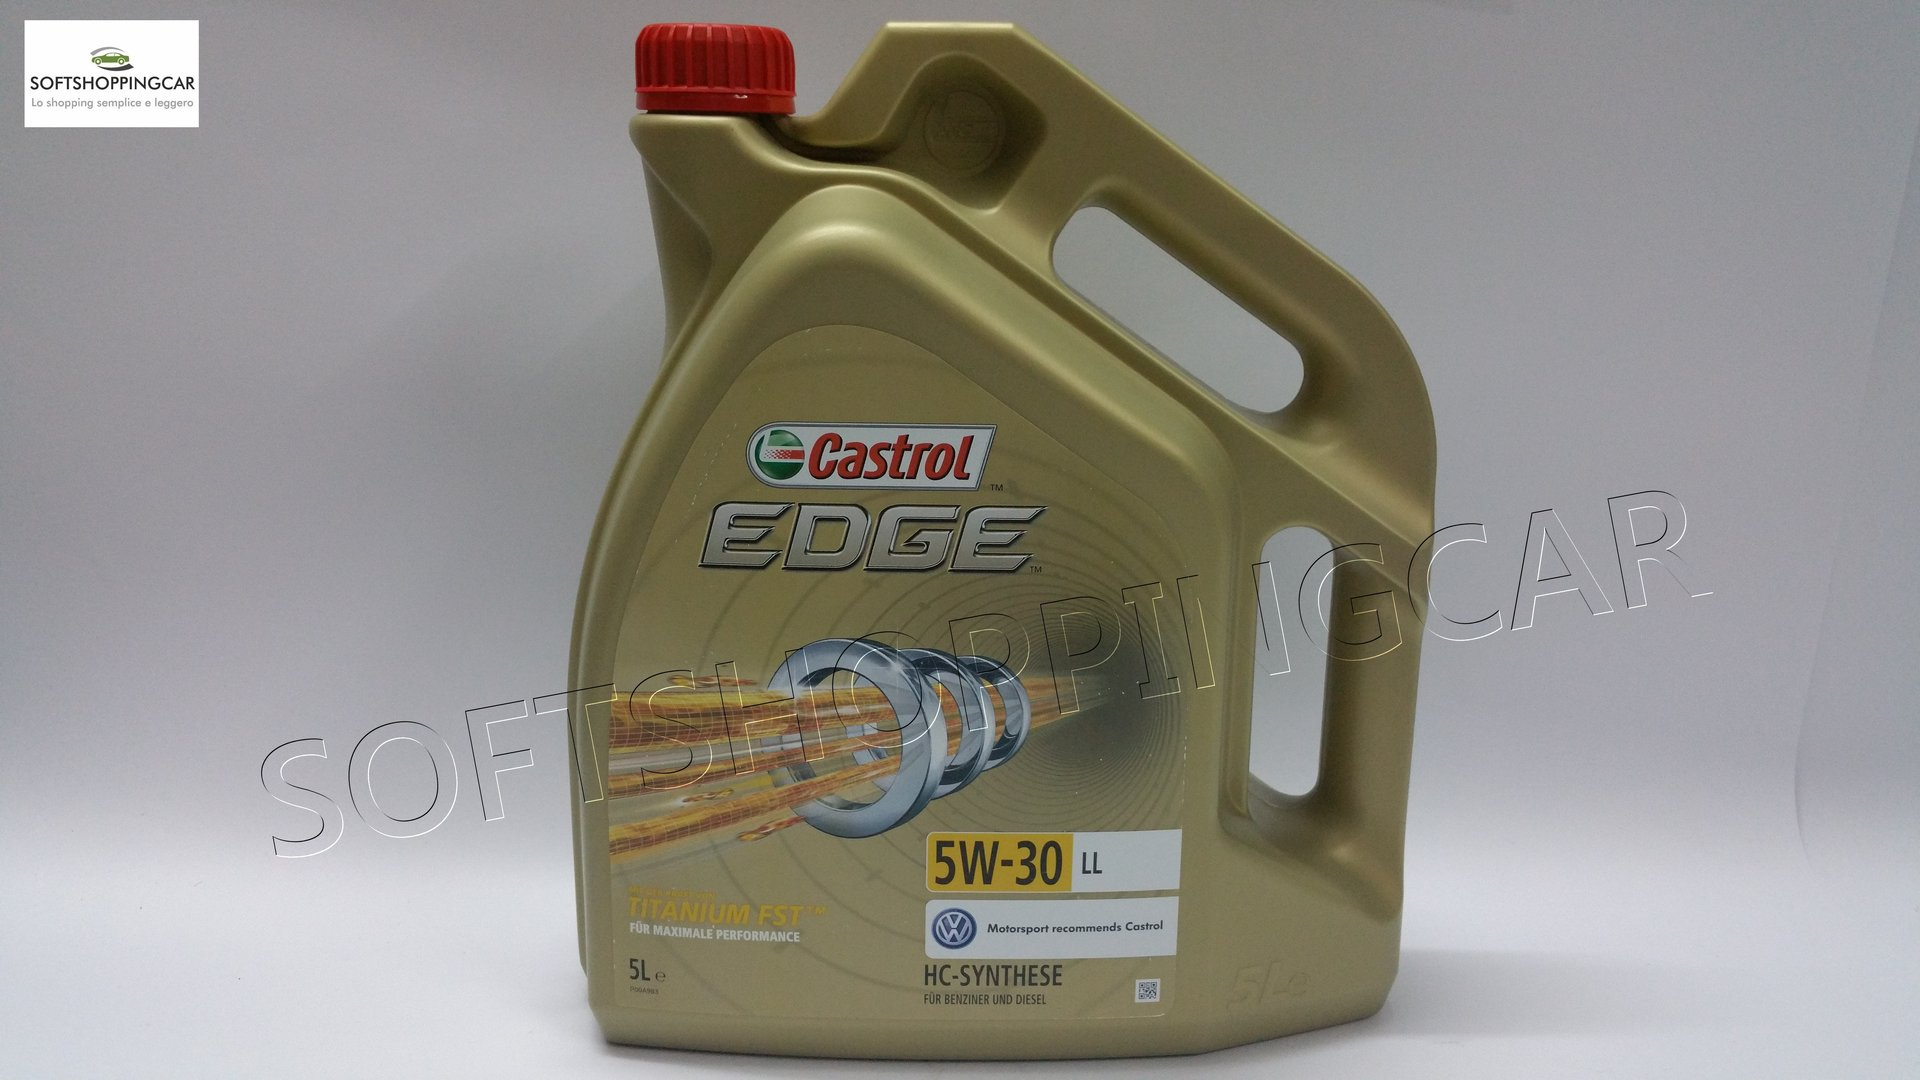 olio castrol edge titanium fst 5w30 long life 5litri softshoppingcar. Black Bedroom Furniture Sets. Home Design Ideas